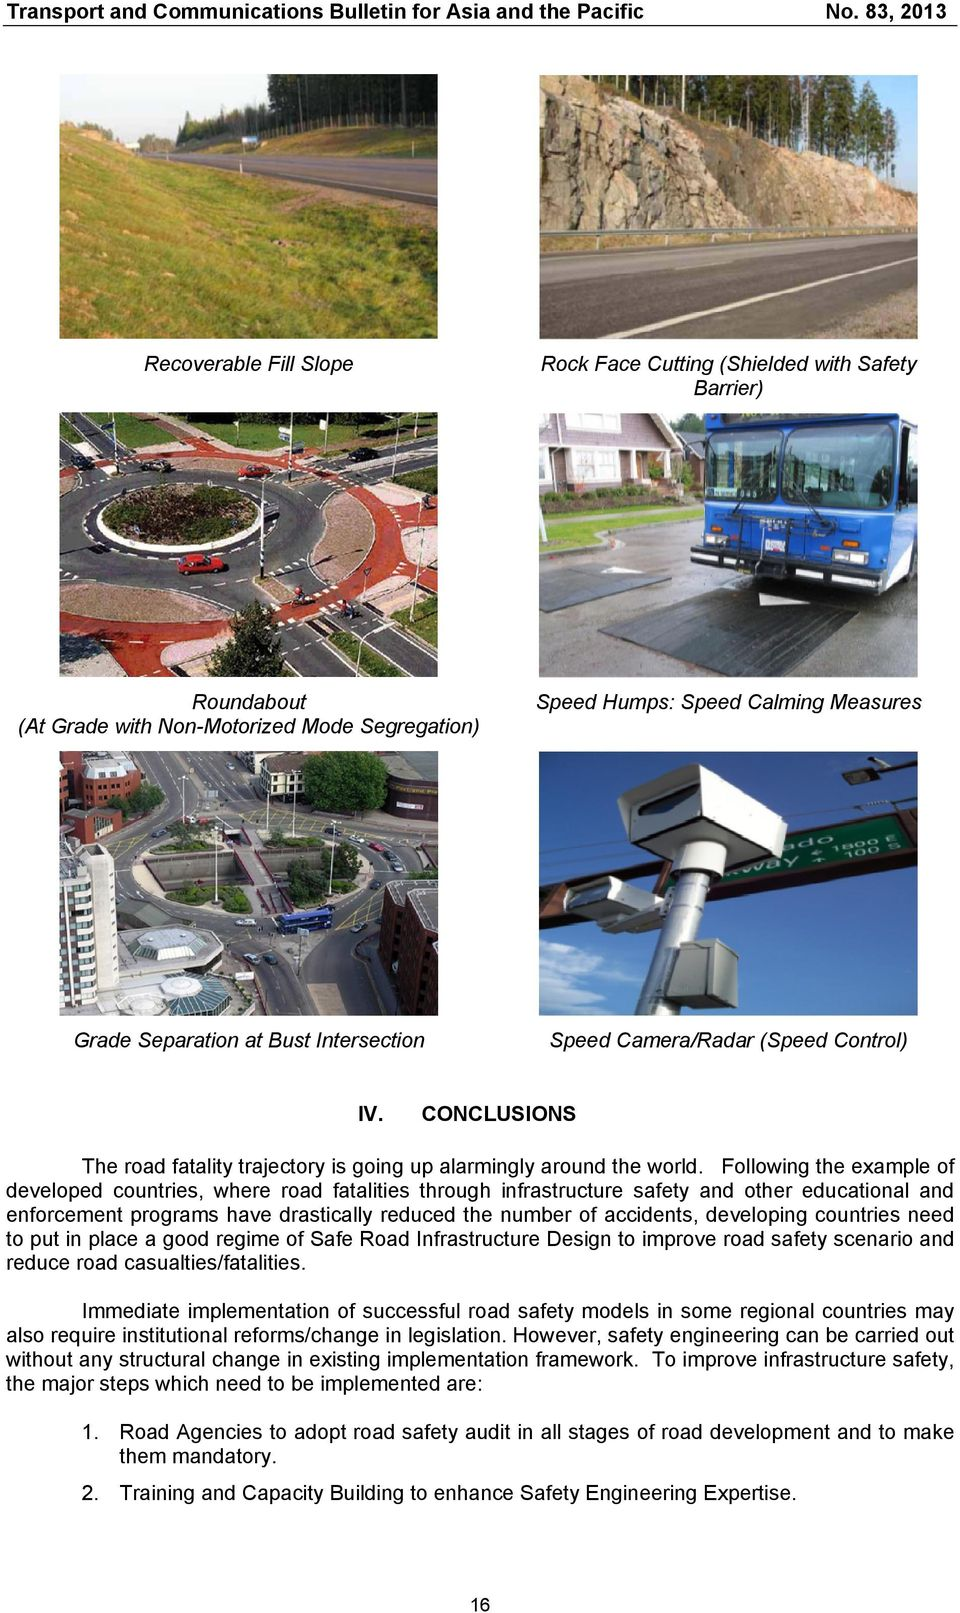 road safety audits and developing road